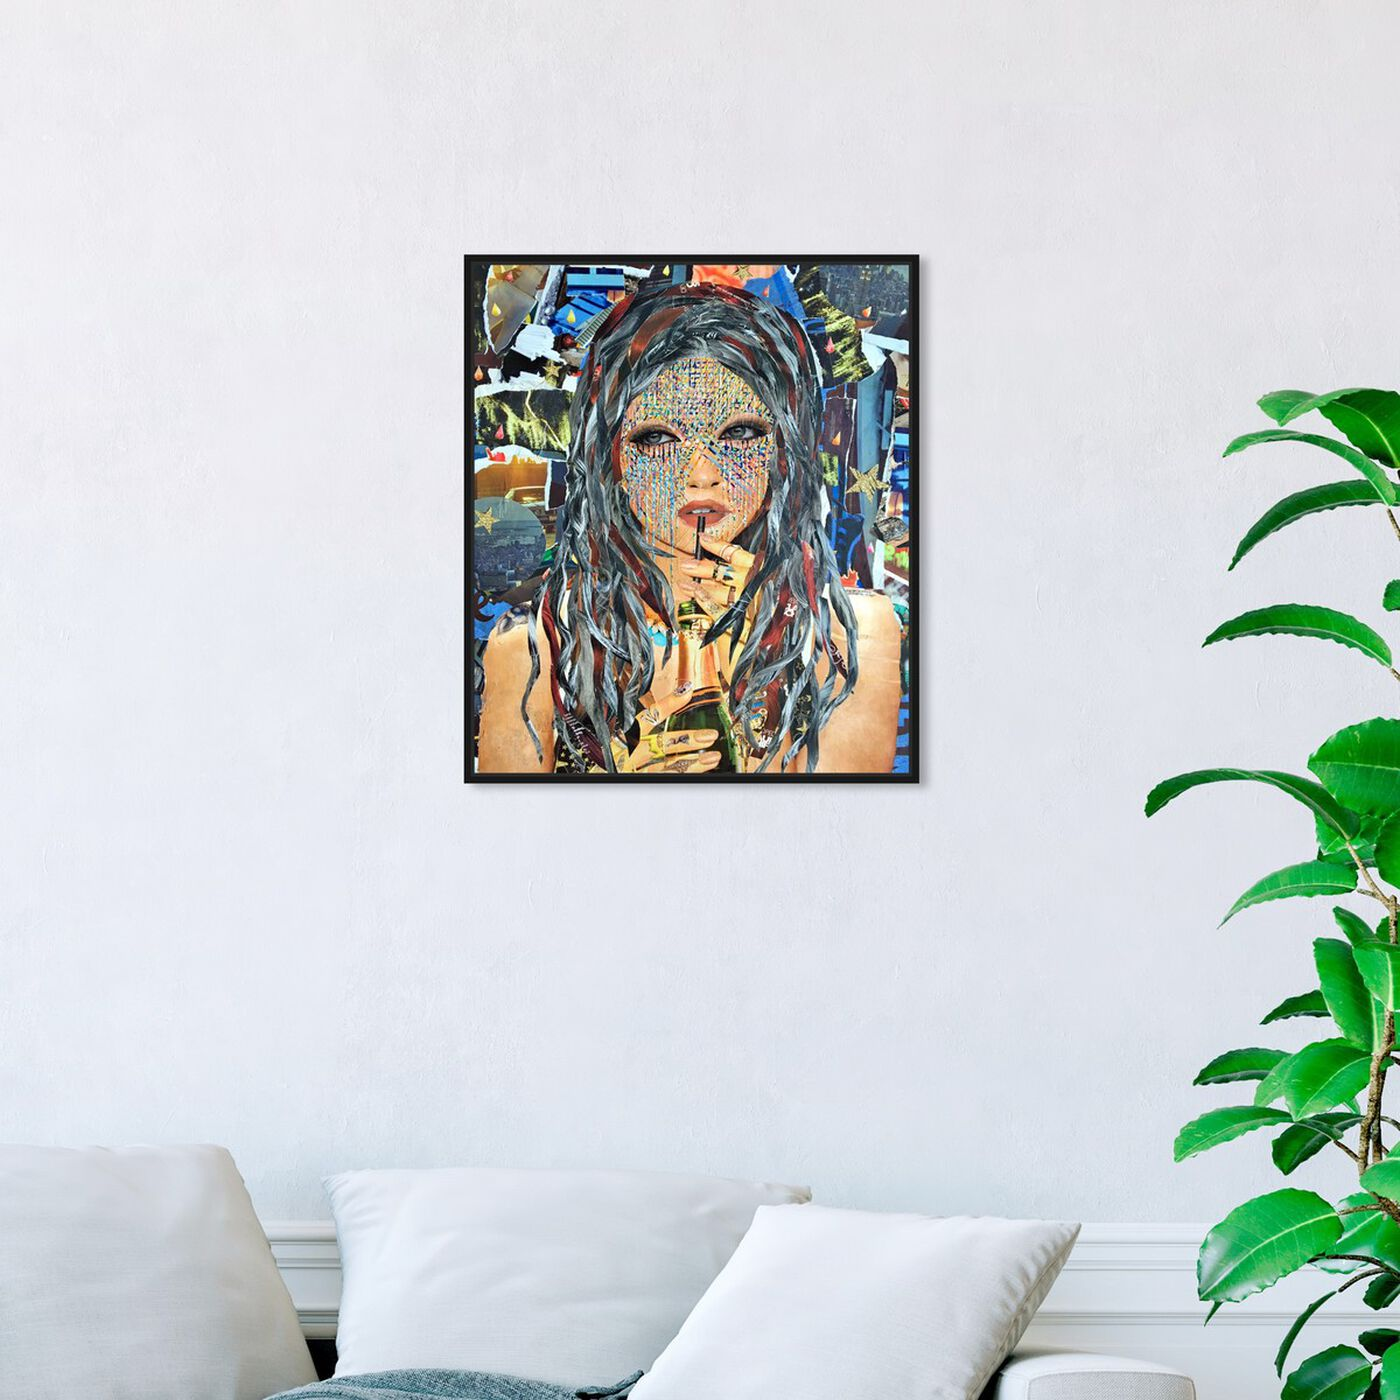 Hanging view of Rose All Day by Katy Hirschfeld featuring fashion and glam and portraits art.